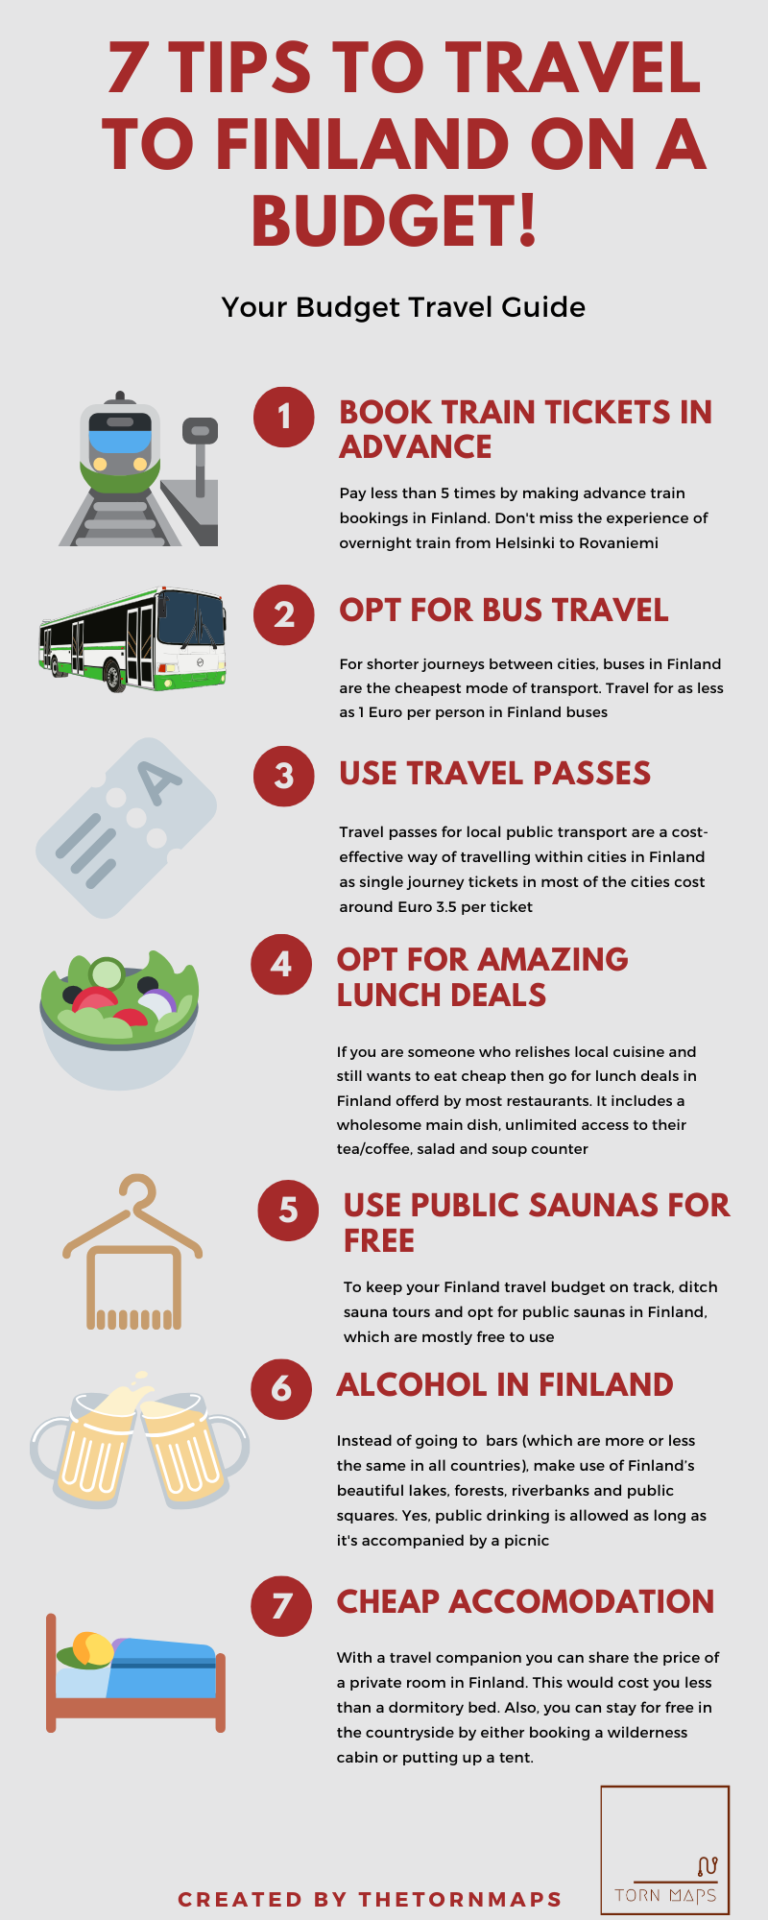 How To Travel To Finland On A Budget The Torn Maps